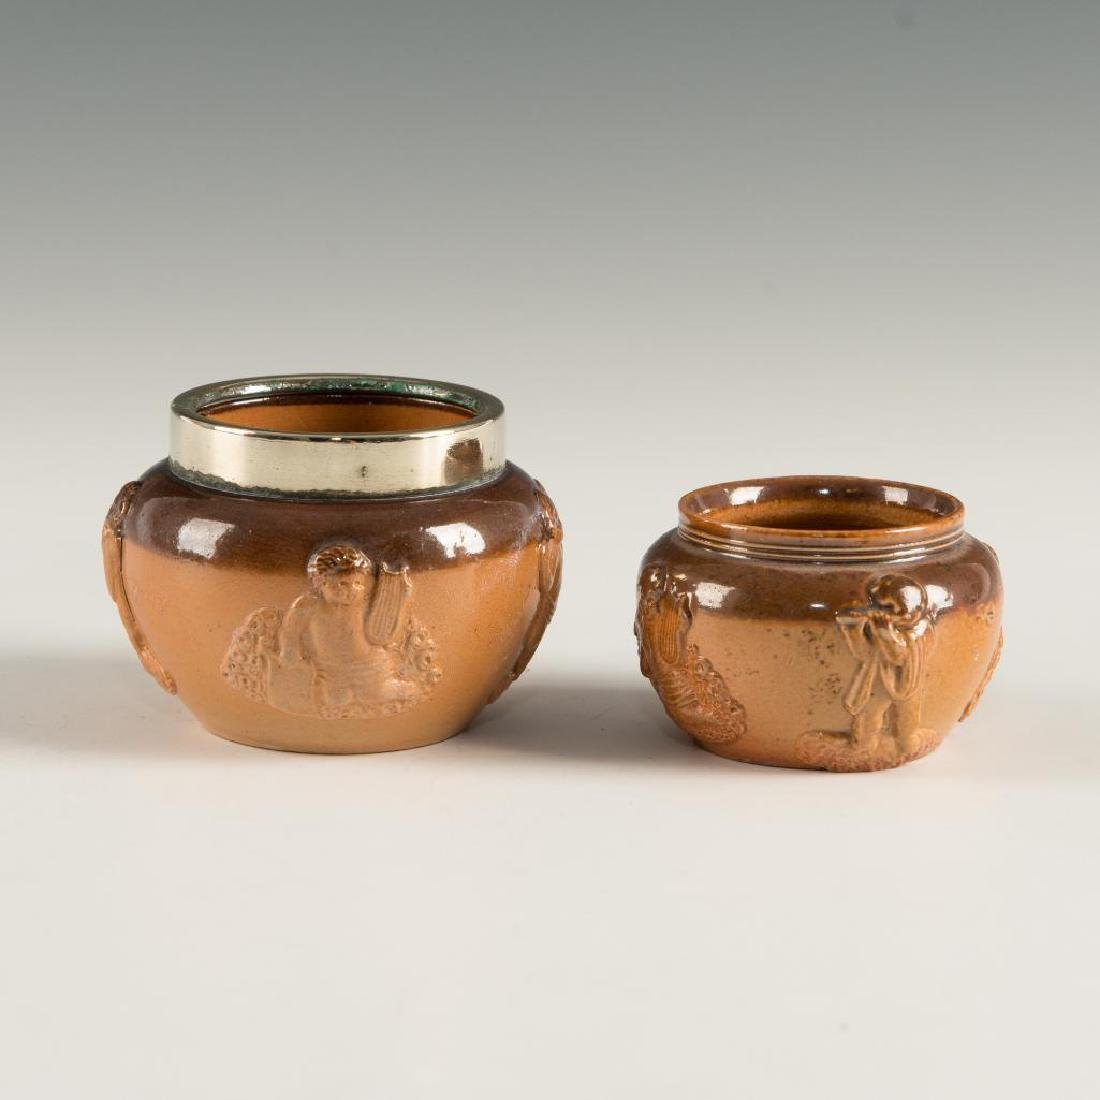 SET OF 2 DOULTON LAMBETH STONEWARE  OPEN SALT CELLARS